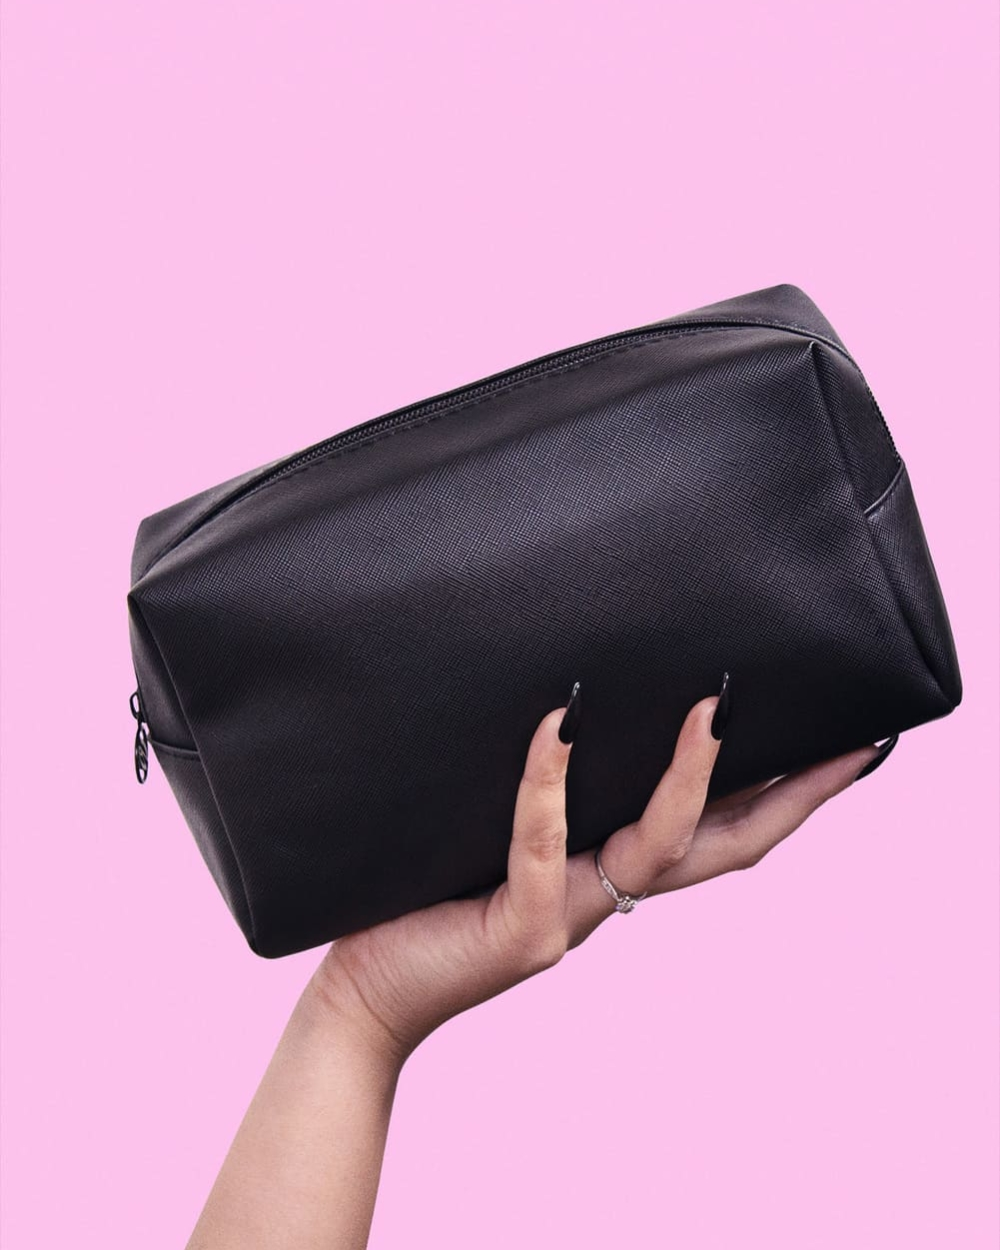 Black Hole Makeup Bag